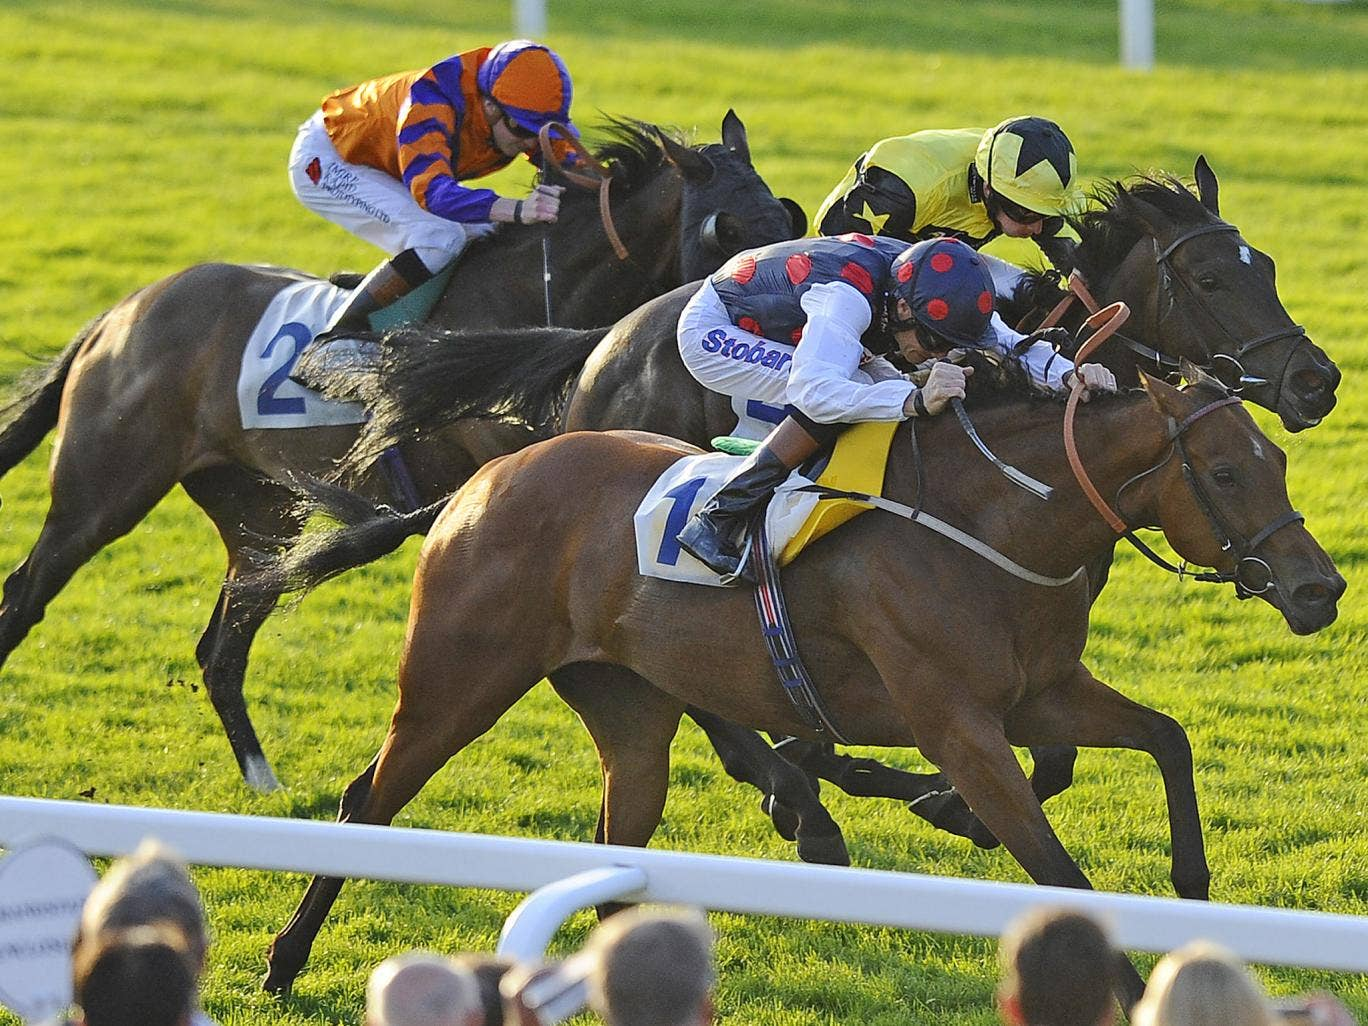 Choral Festival wins the fillies' handicap at Windsor on Monday night, the final leg of a treble for her jockey, Richard Hughes, who reached his century for the season